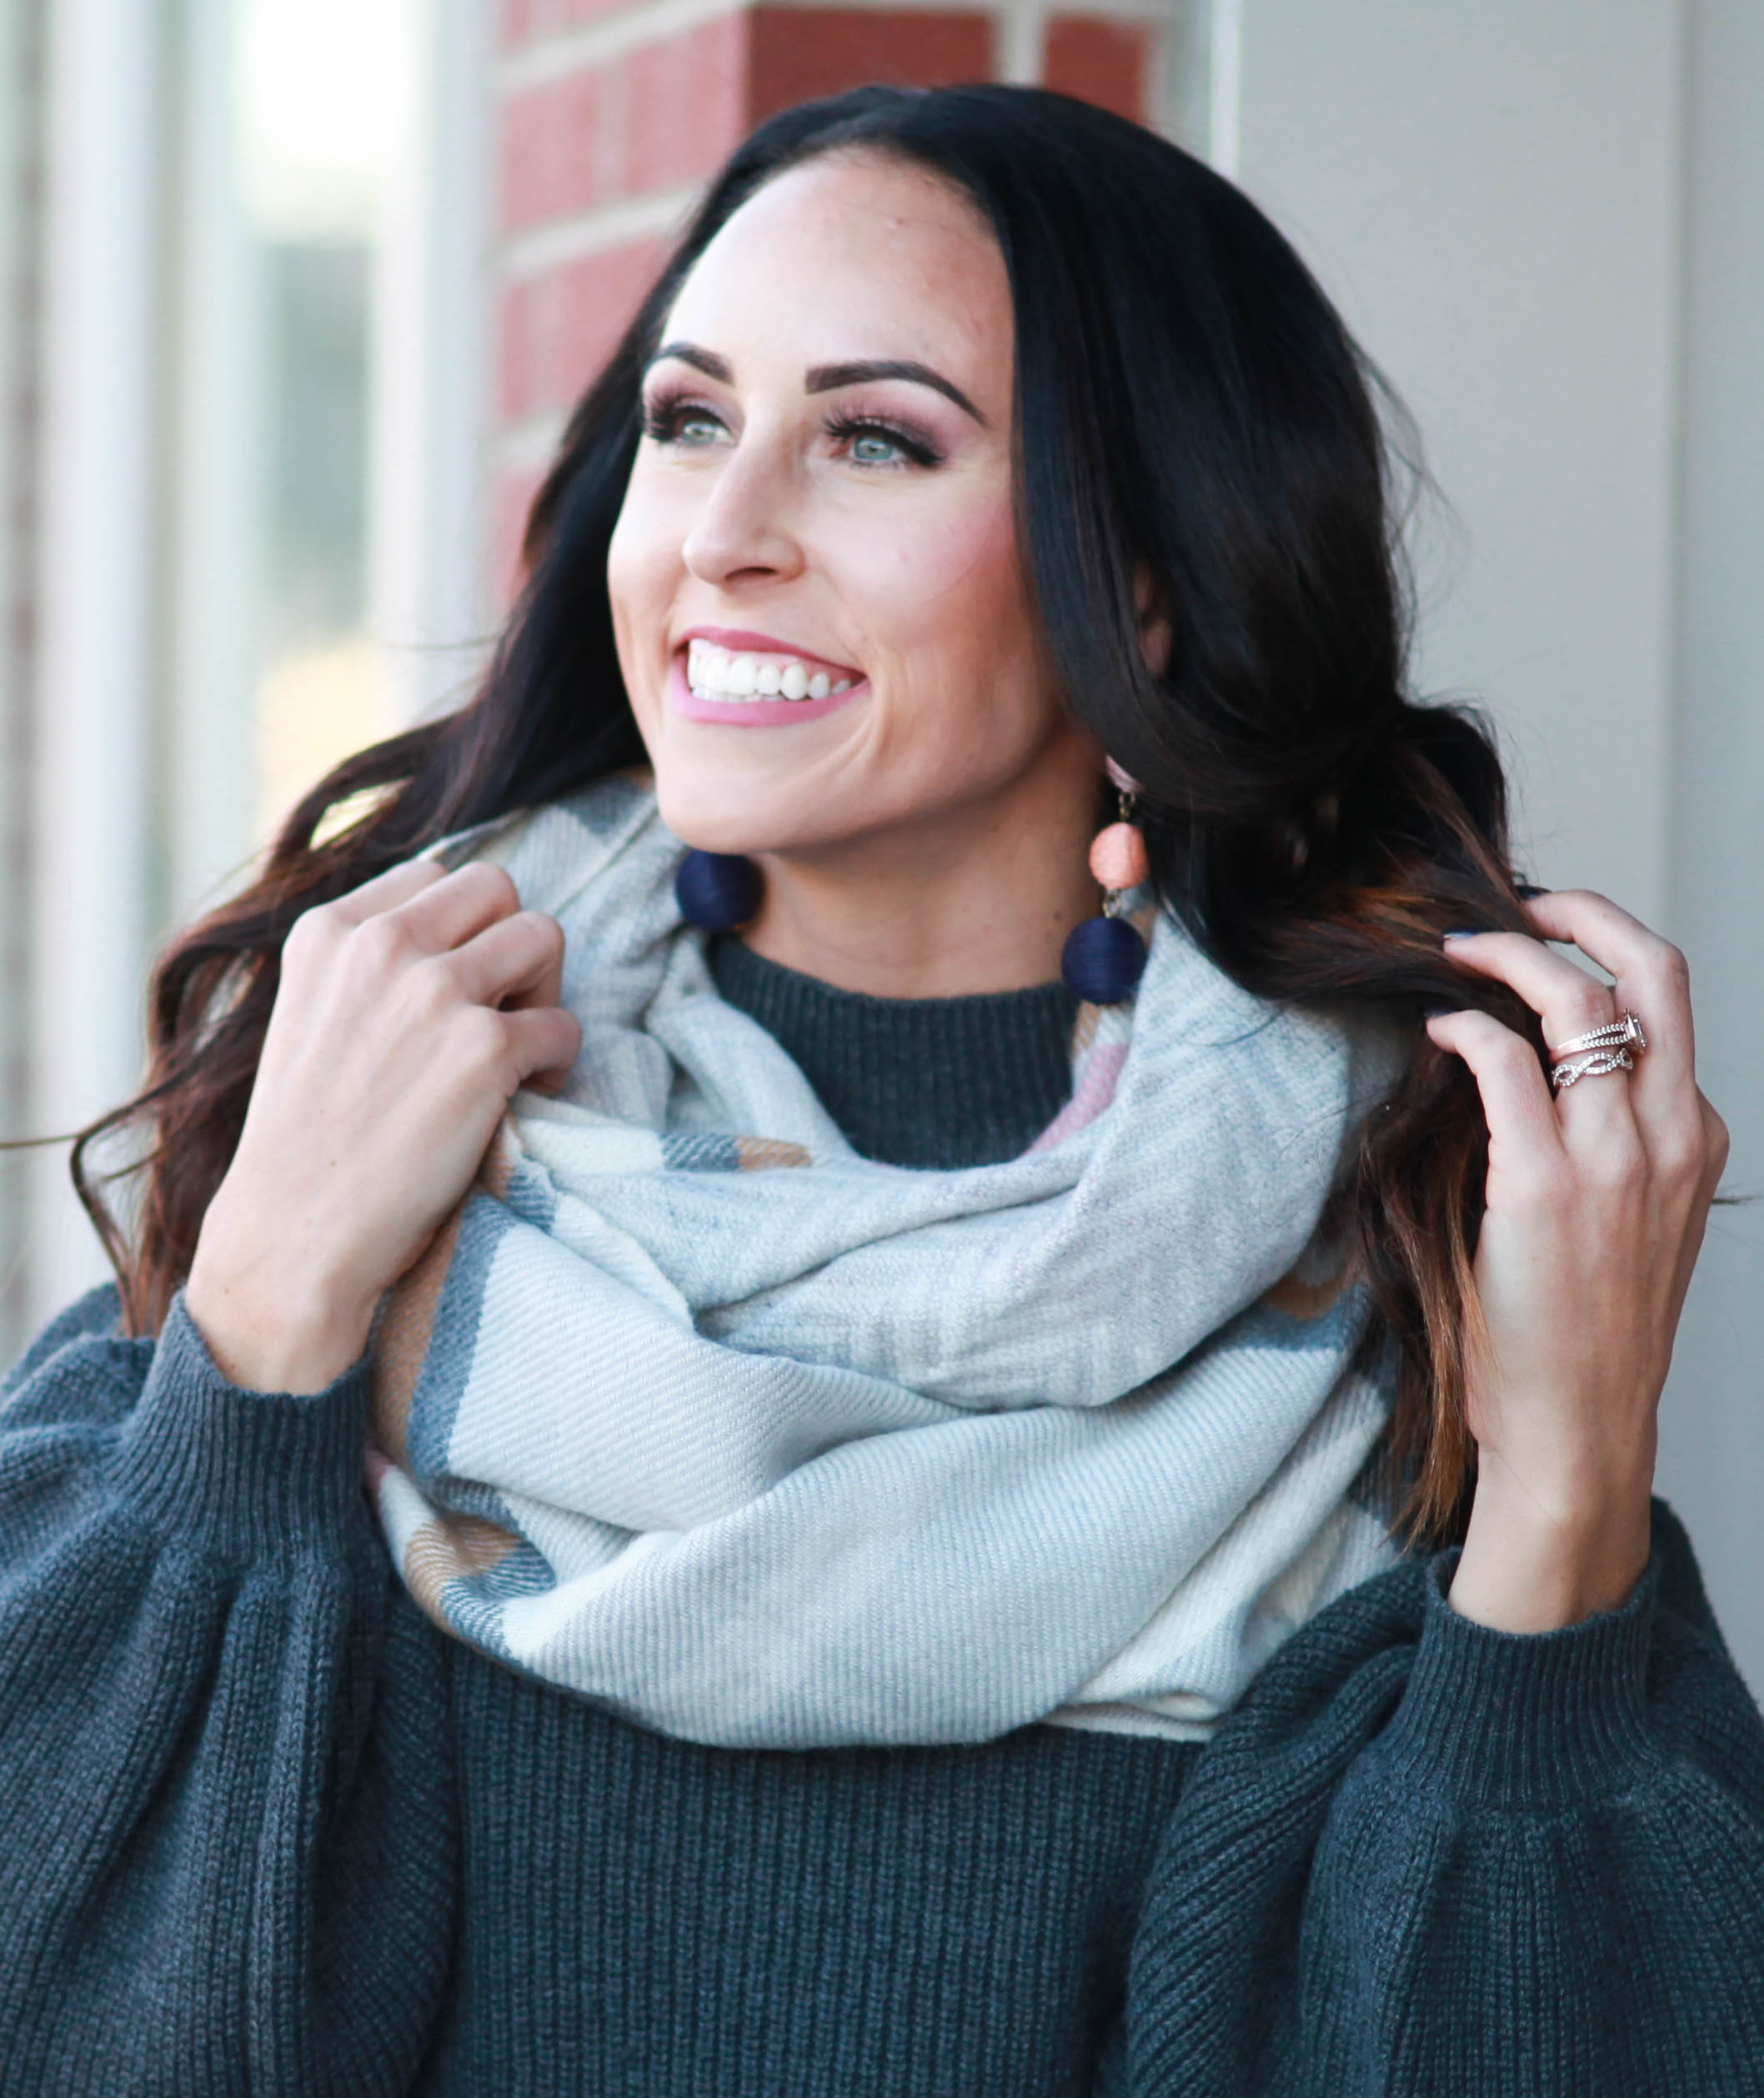 PaleOMG Fashion: Winter Scarves and Flattering Sweaters